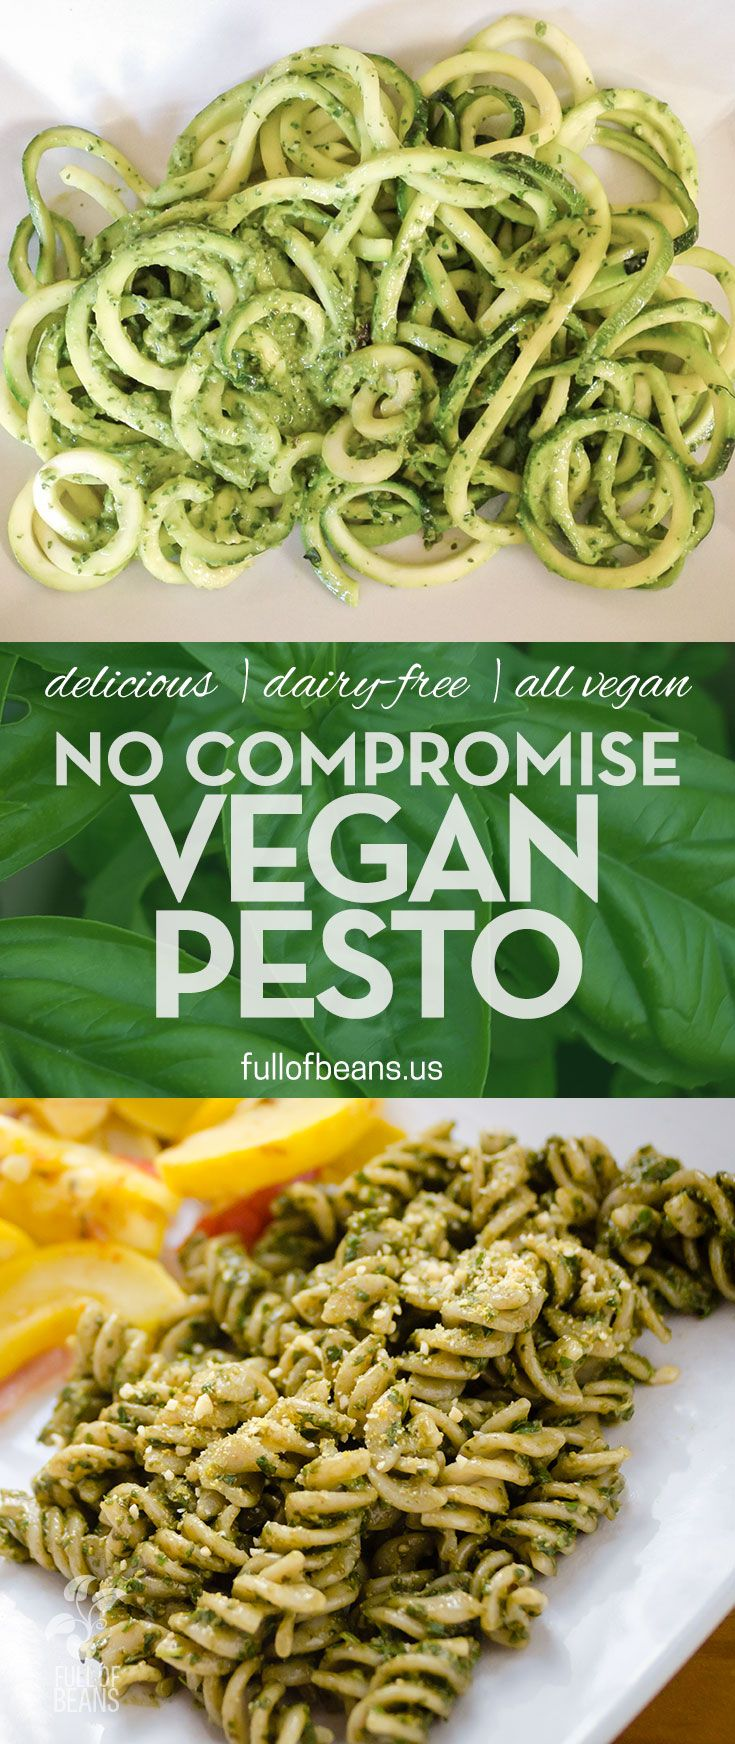 This no-compromise vegan pesto recipe is inspired by traditional pesto and offers all the same tastes and texture, but cruelty-free and without any saturated fat. That's right – healthy pesto! Recipe at fullofbeans.us! #pesto #vegan #pasta